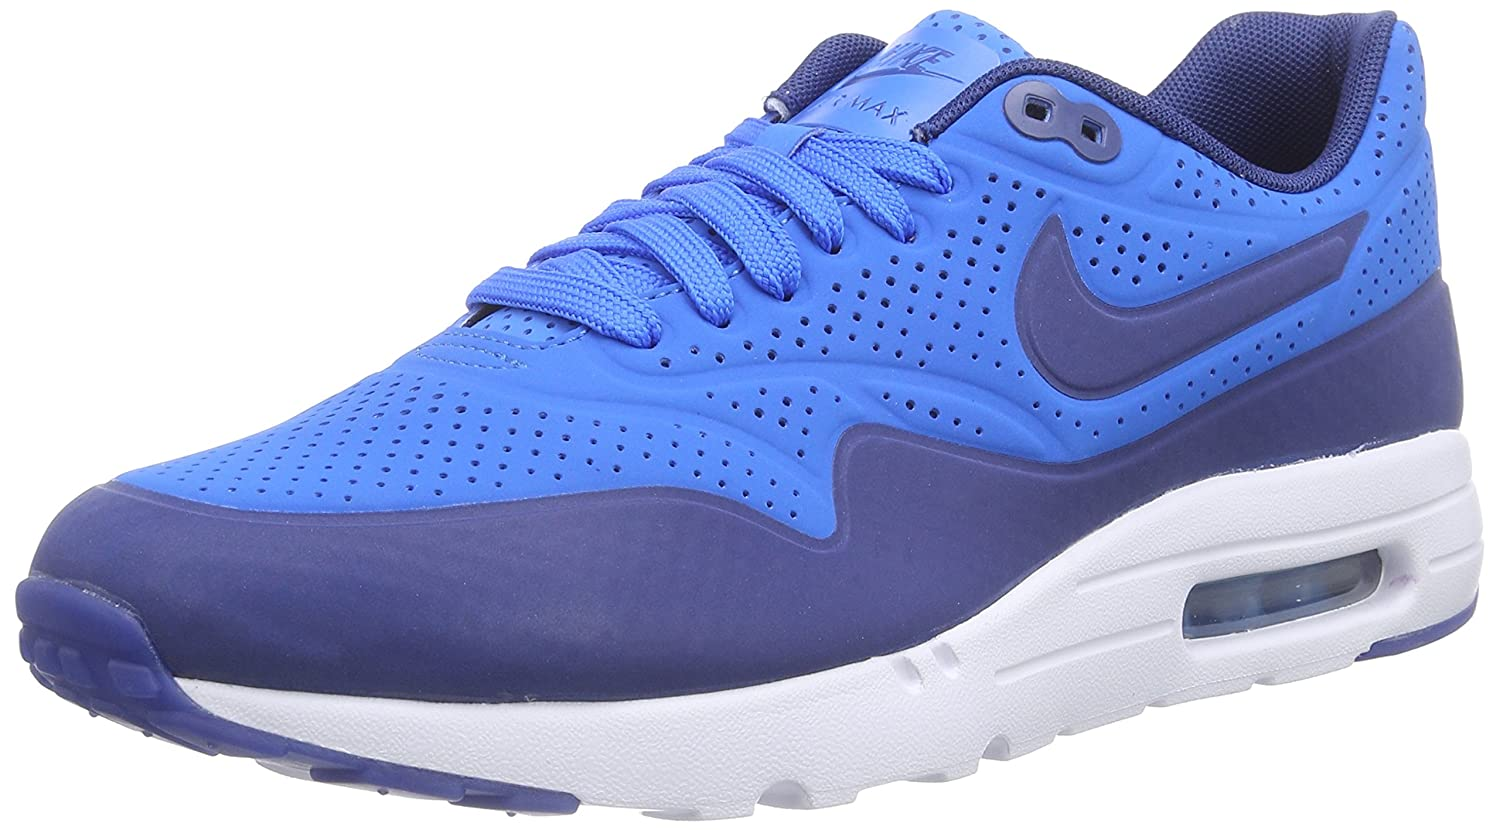 Nike Air Max 1 Ultra Moire Herren Turnschuhes